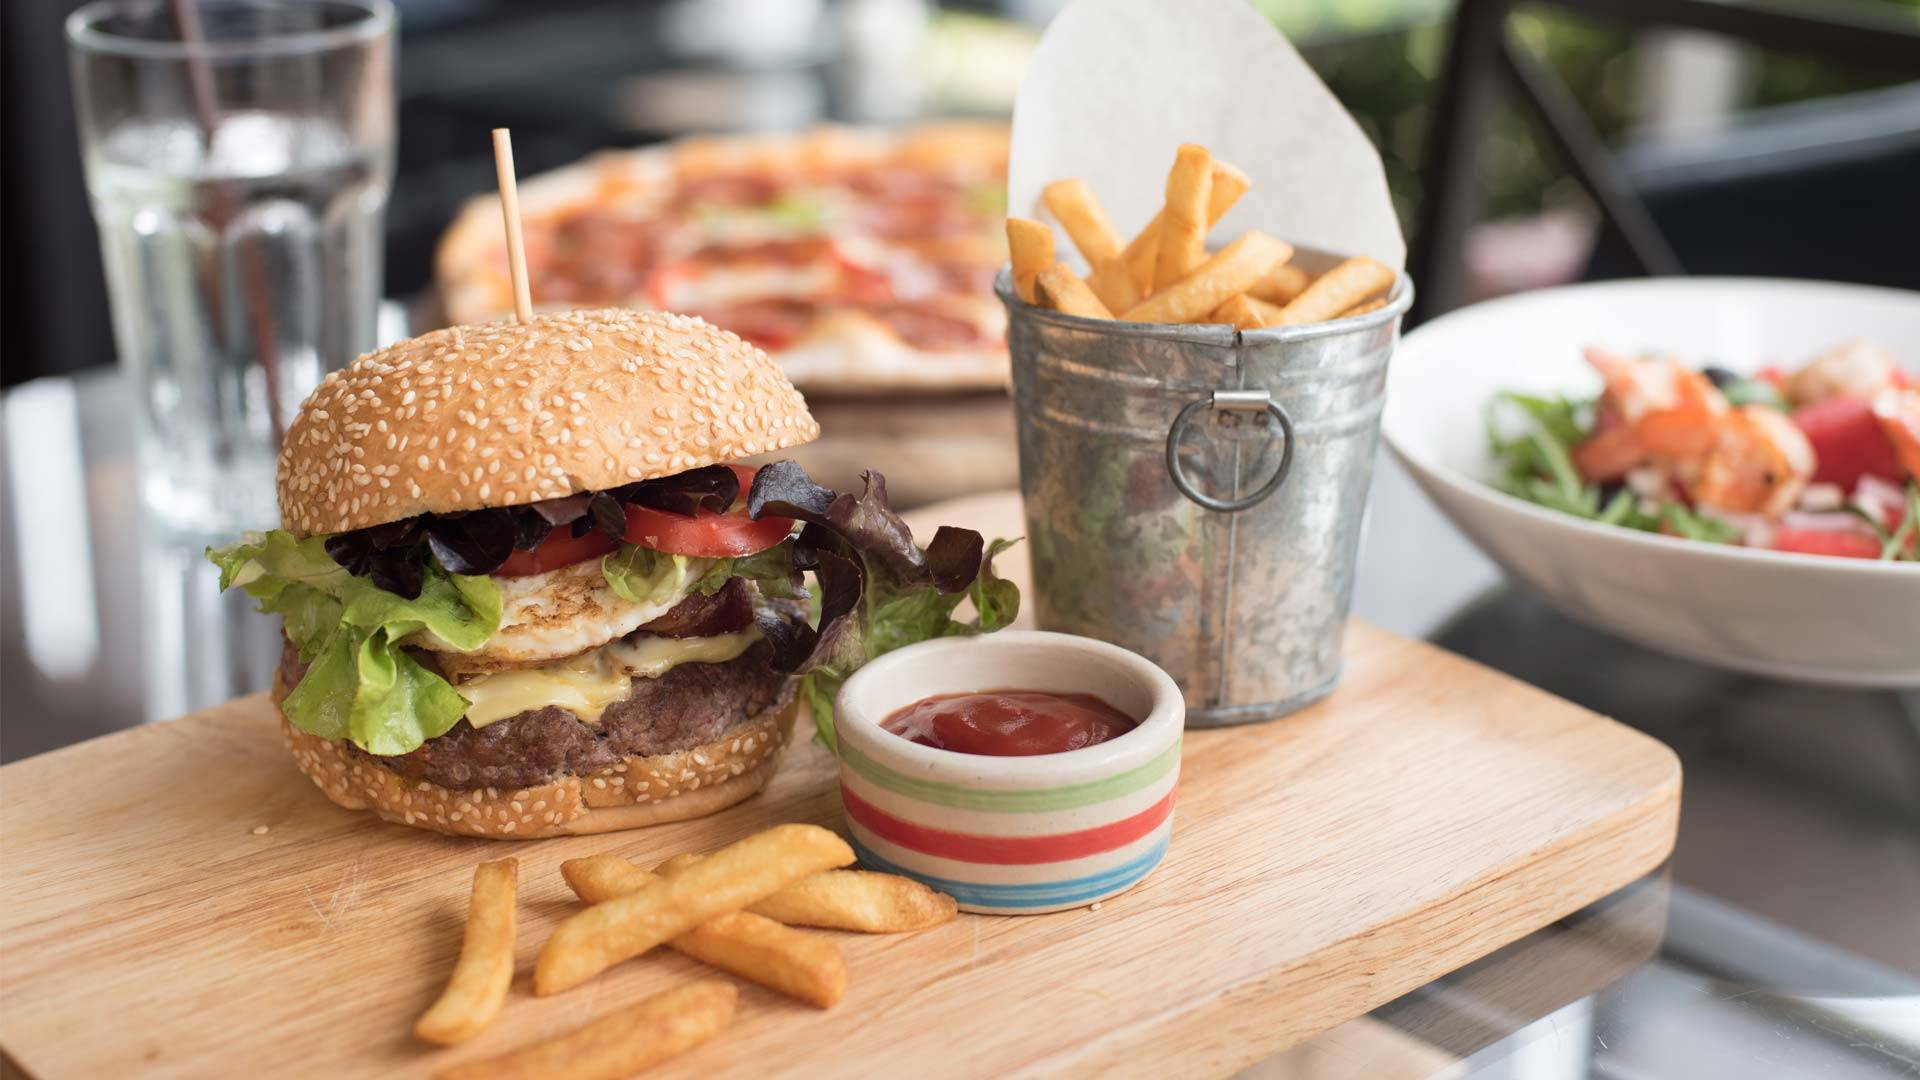 Fully Managed Burger Restaurant For Sale in Victoria,Australia